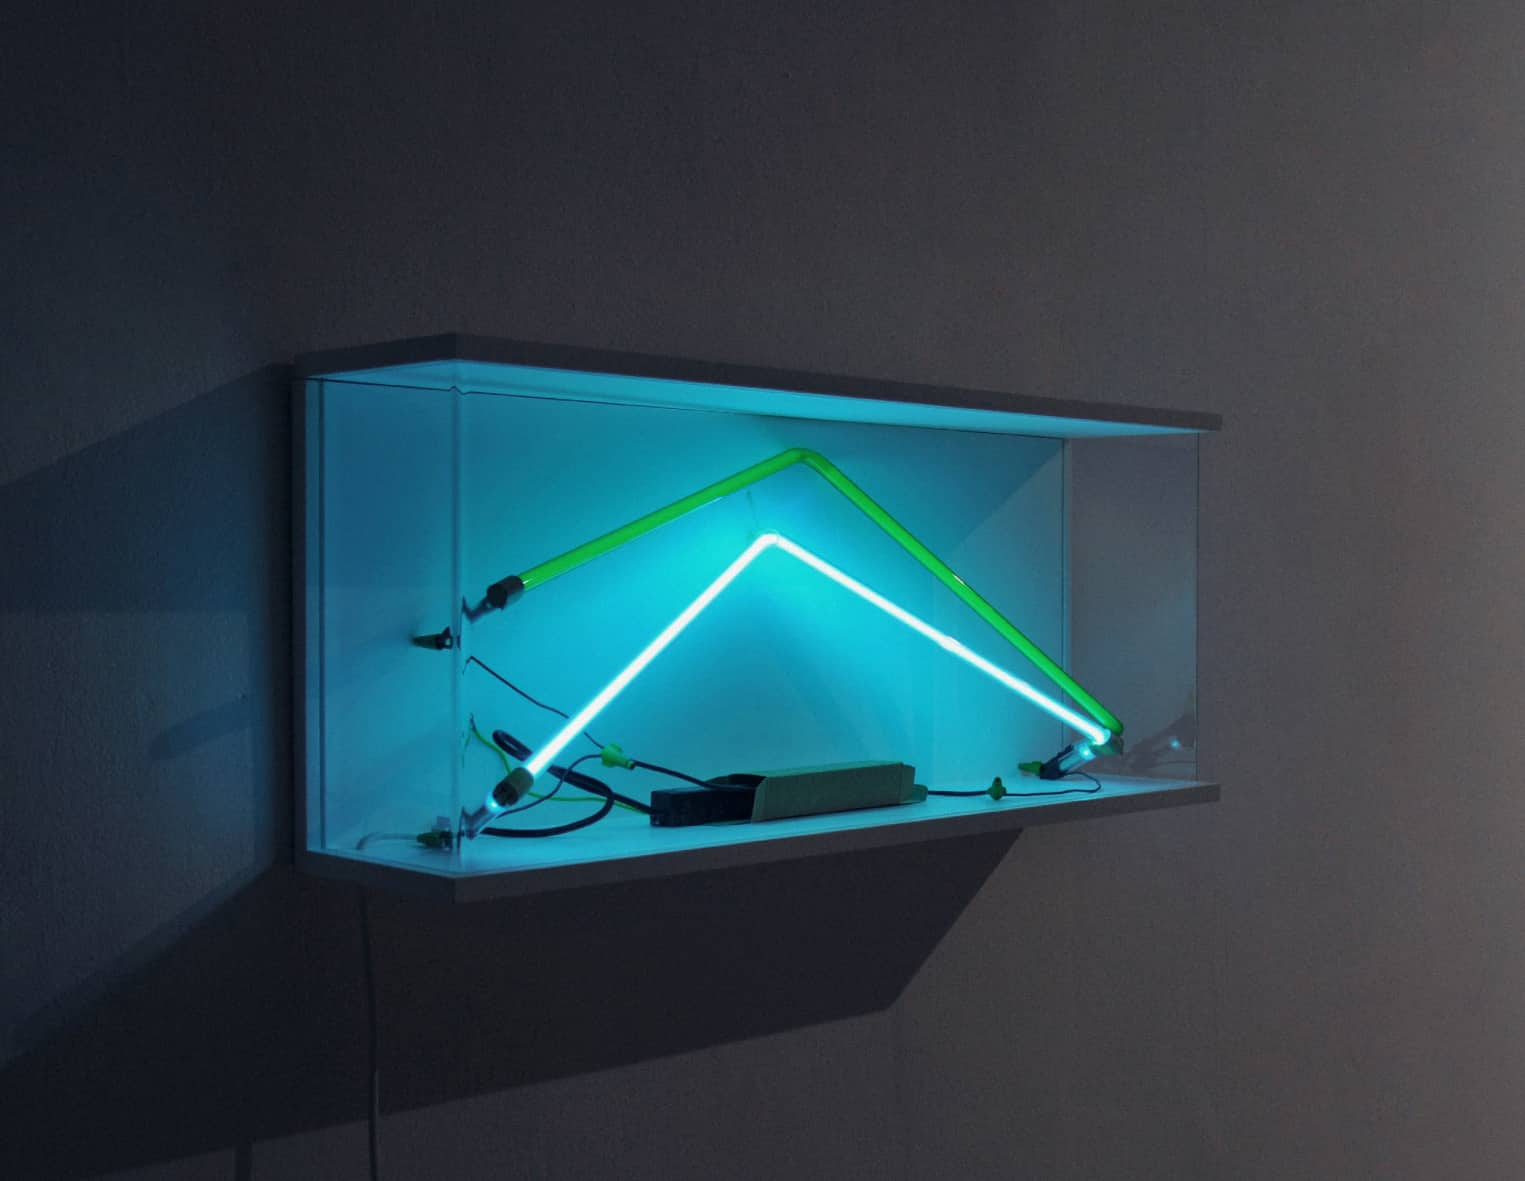 Kuba Bąkowski, Introduction to Task: Psychokinesis on T5 Fluorescent Lamp with Changes in Light and Environment Color Year: 2011 / Medium: photographic e-print / Wooden frame / 140 x 113 cm / + depending on version one to several cabinets (wood, neons, electronics, acrylic glass) 35 x 95x 18 cm;